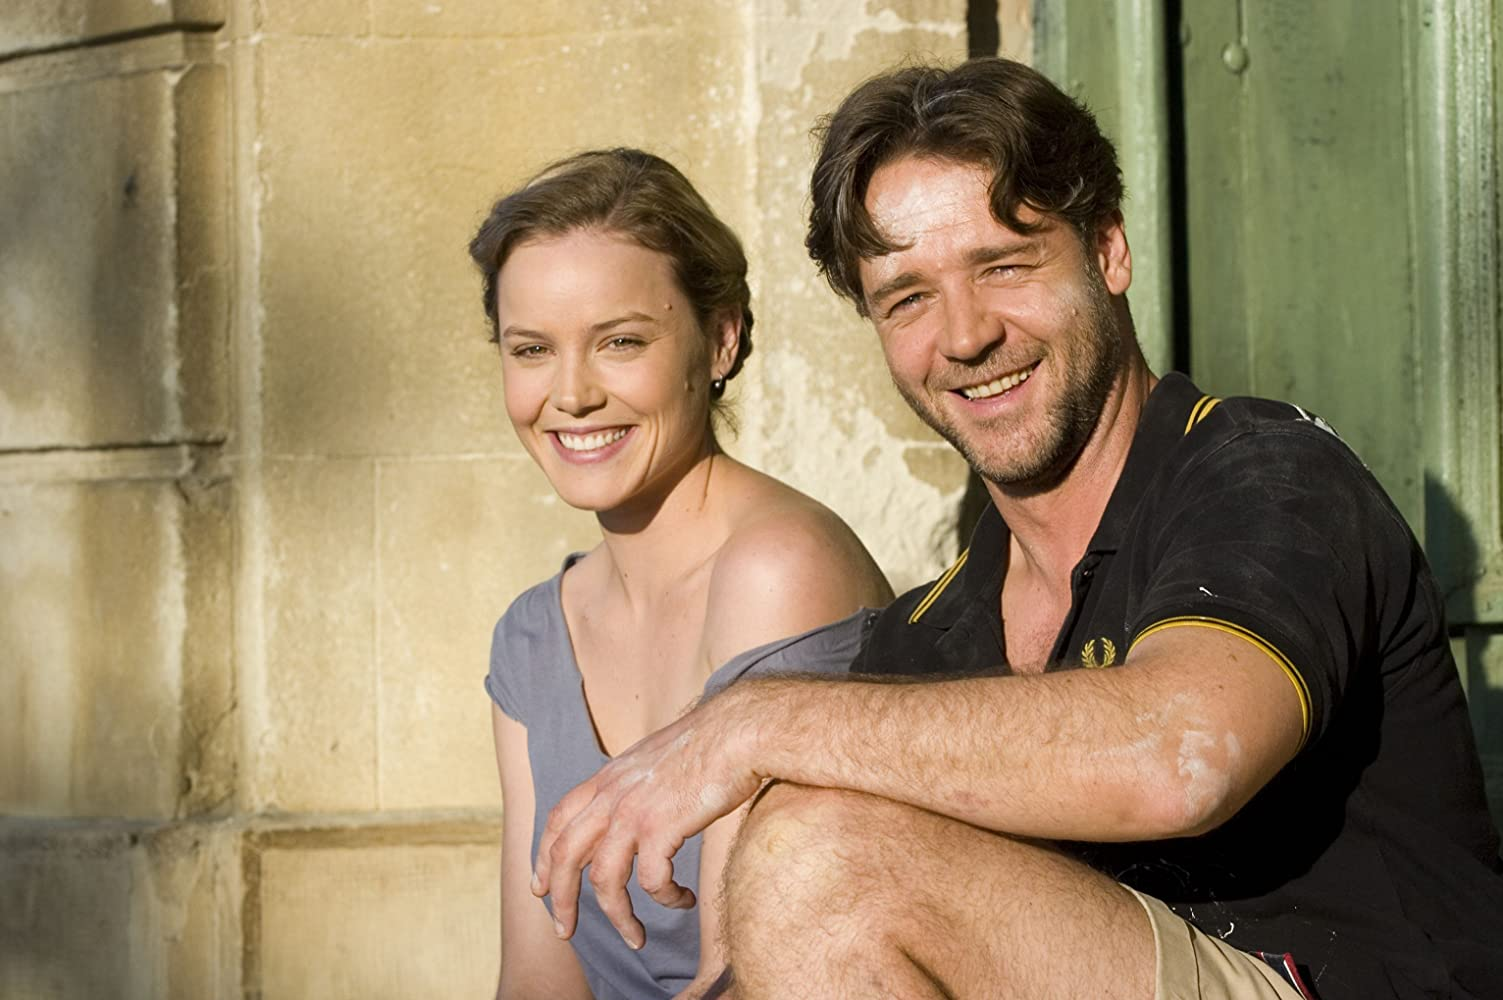 Russell Crowe and Abbie Cornish in A Good Year (2006)